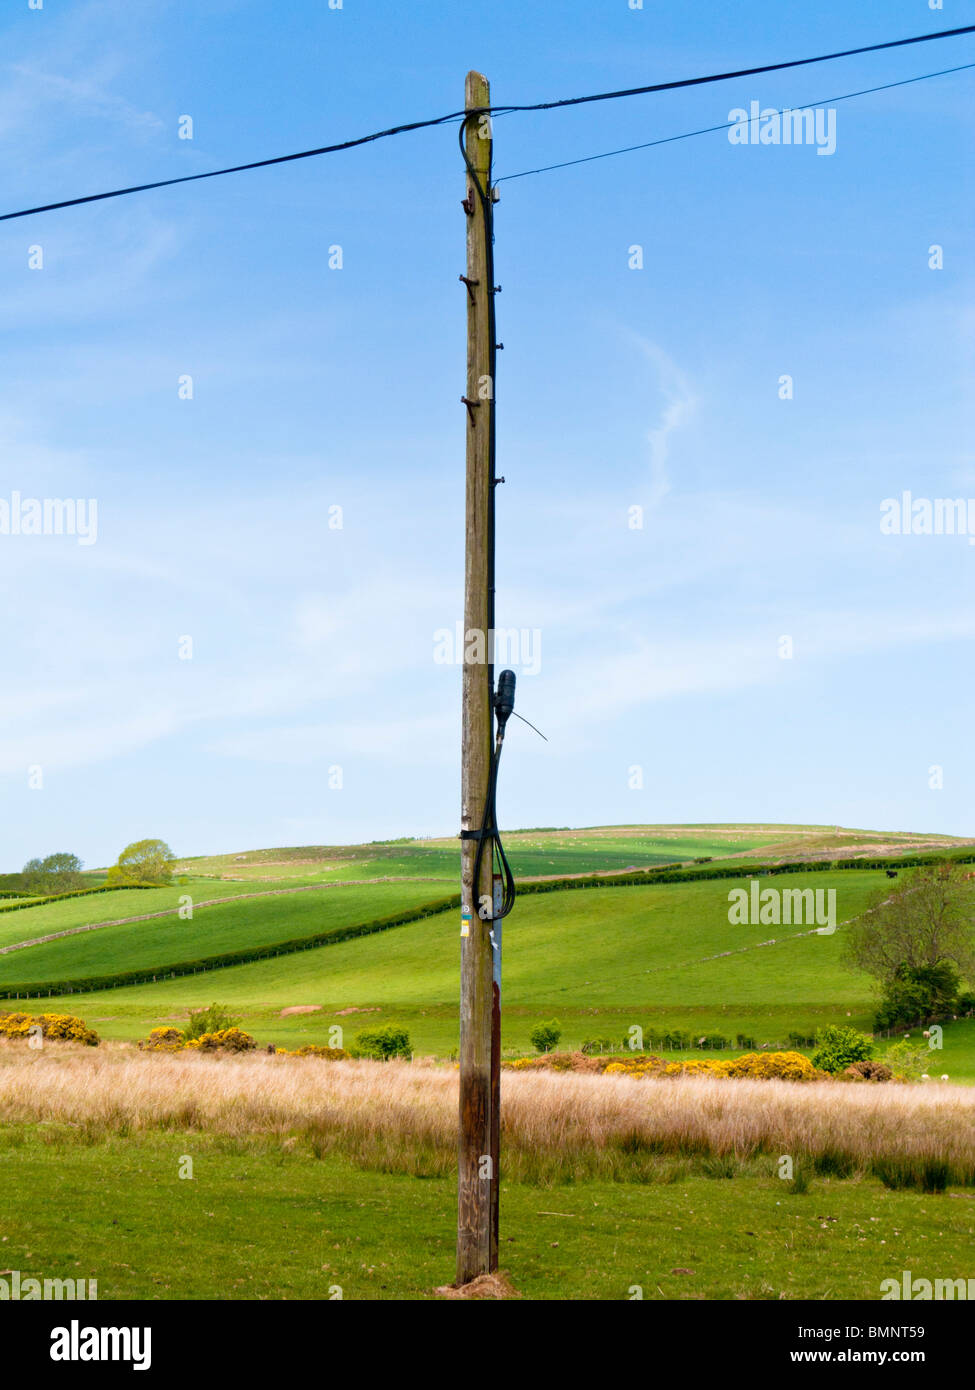 Telephone pole and wires in a field in England UK Stock Photo ...